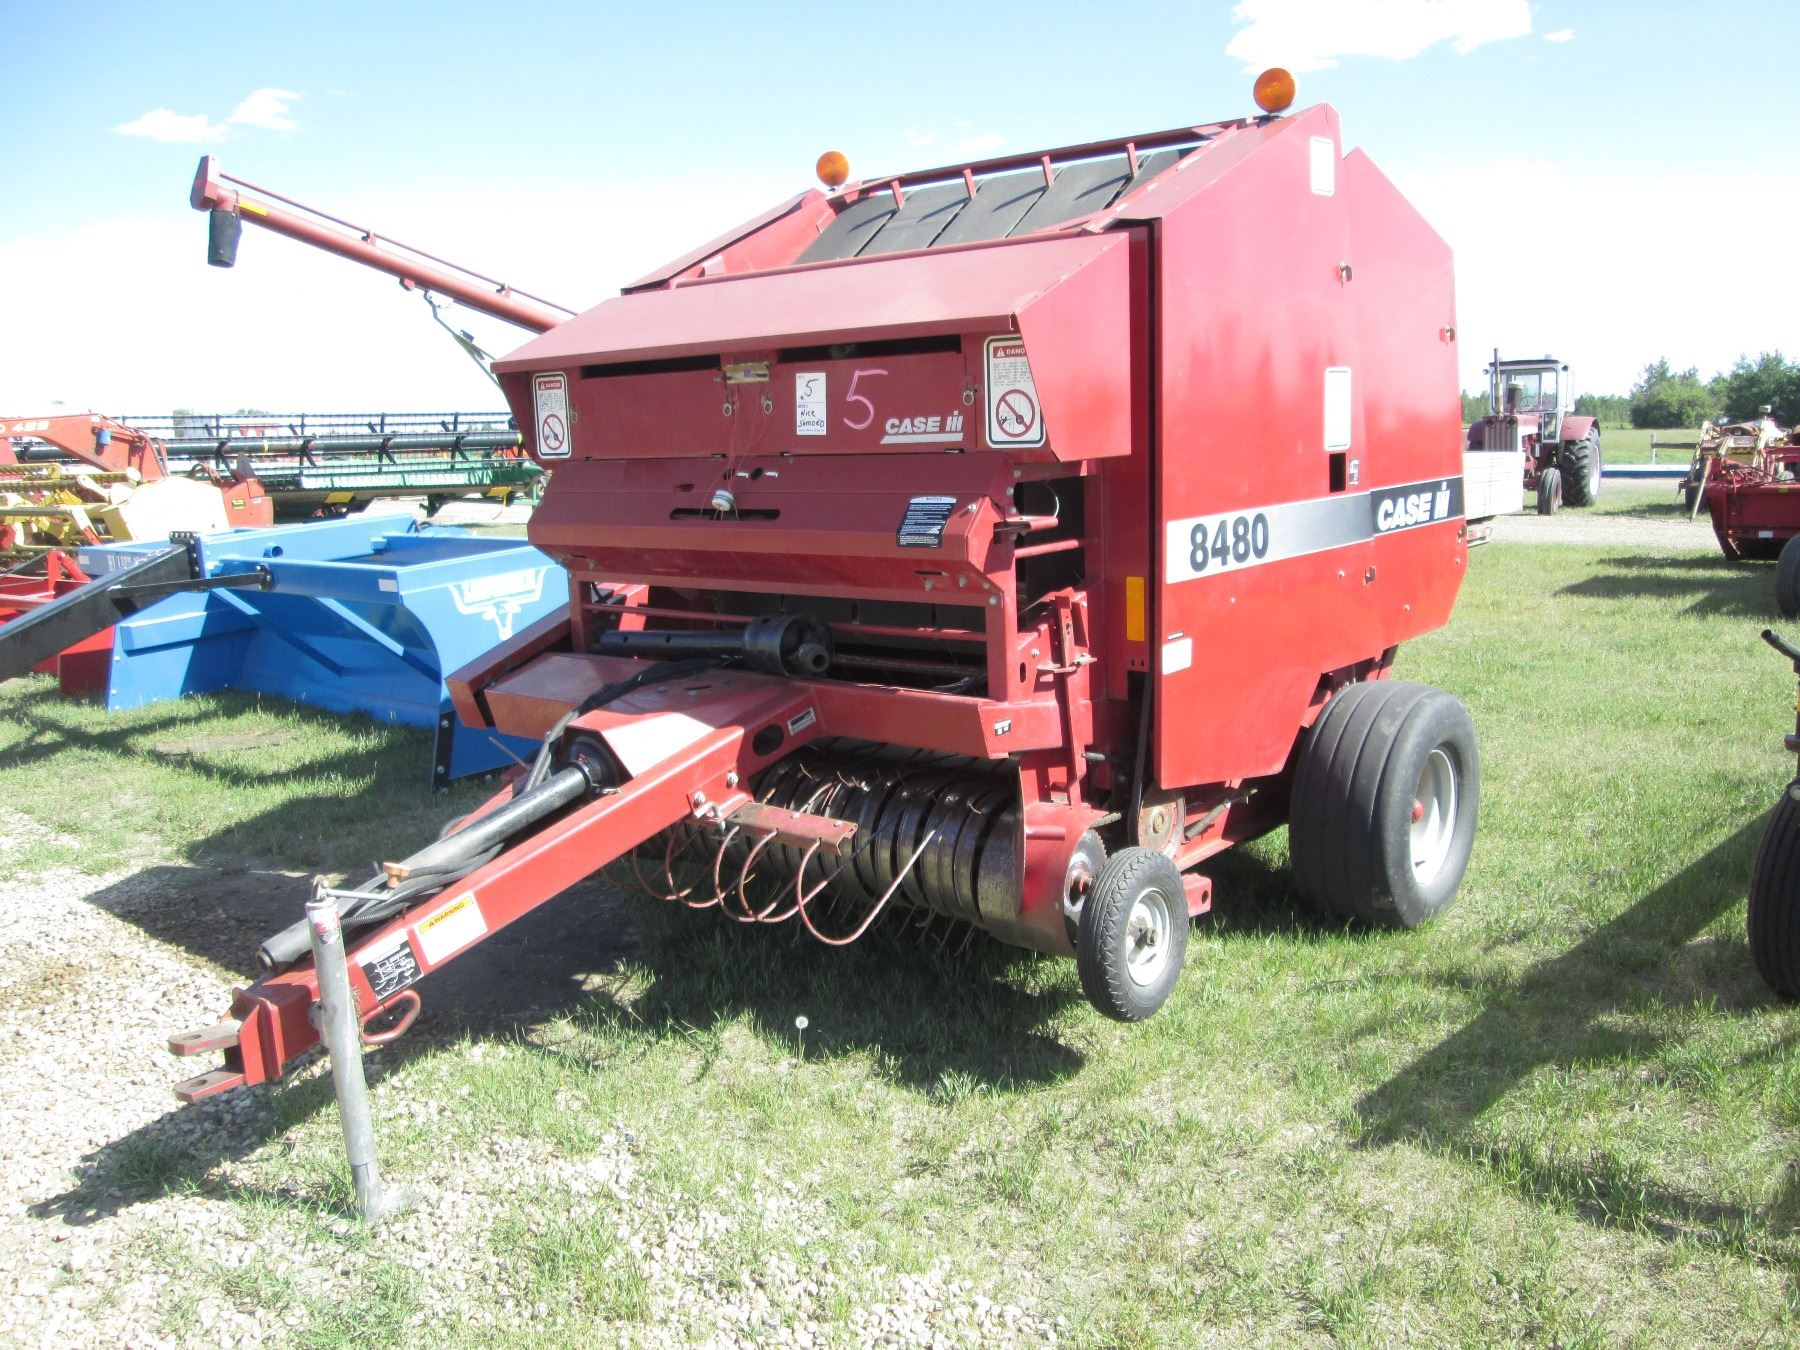 CASE-IH 8480 ROUND BALER, NEW LOWER BELTS, 1 TOP